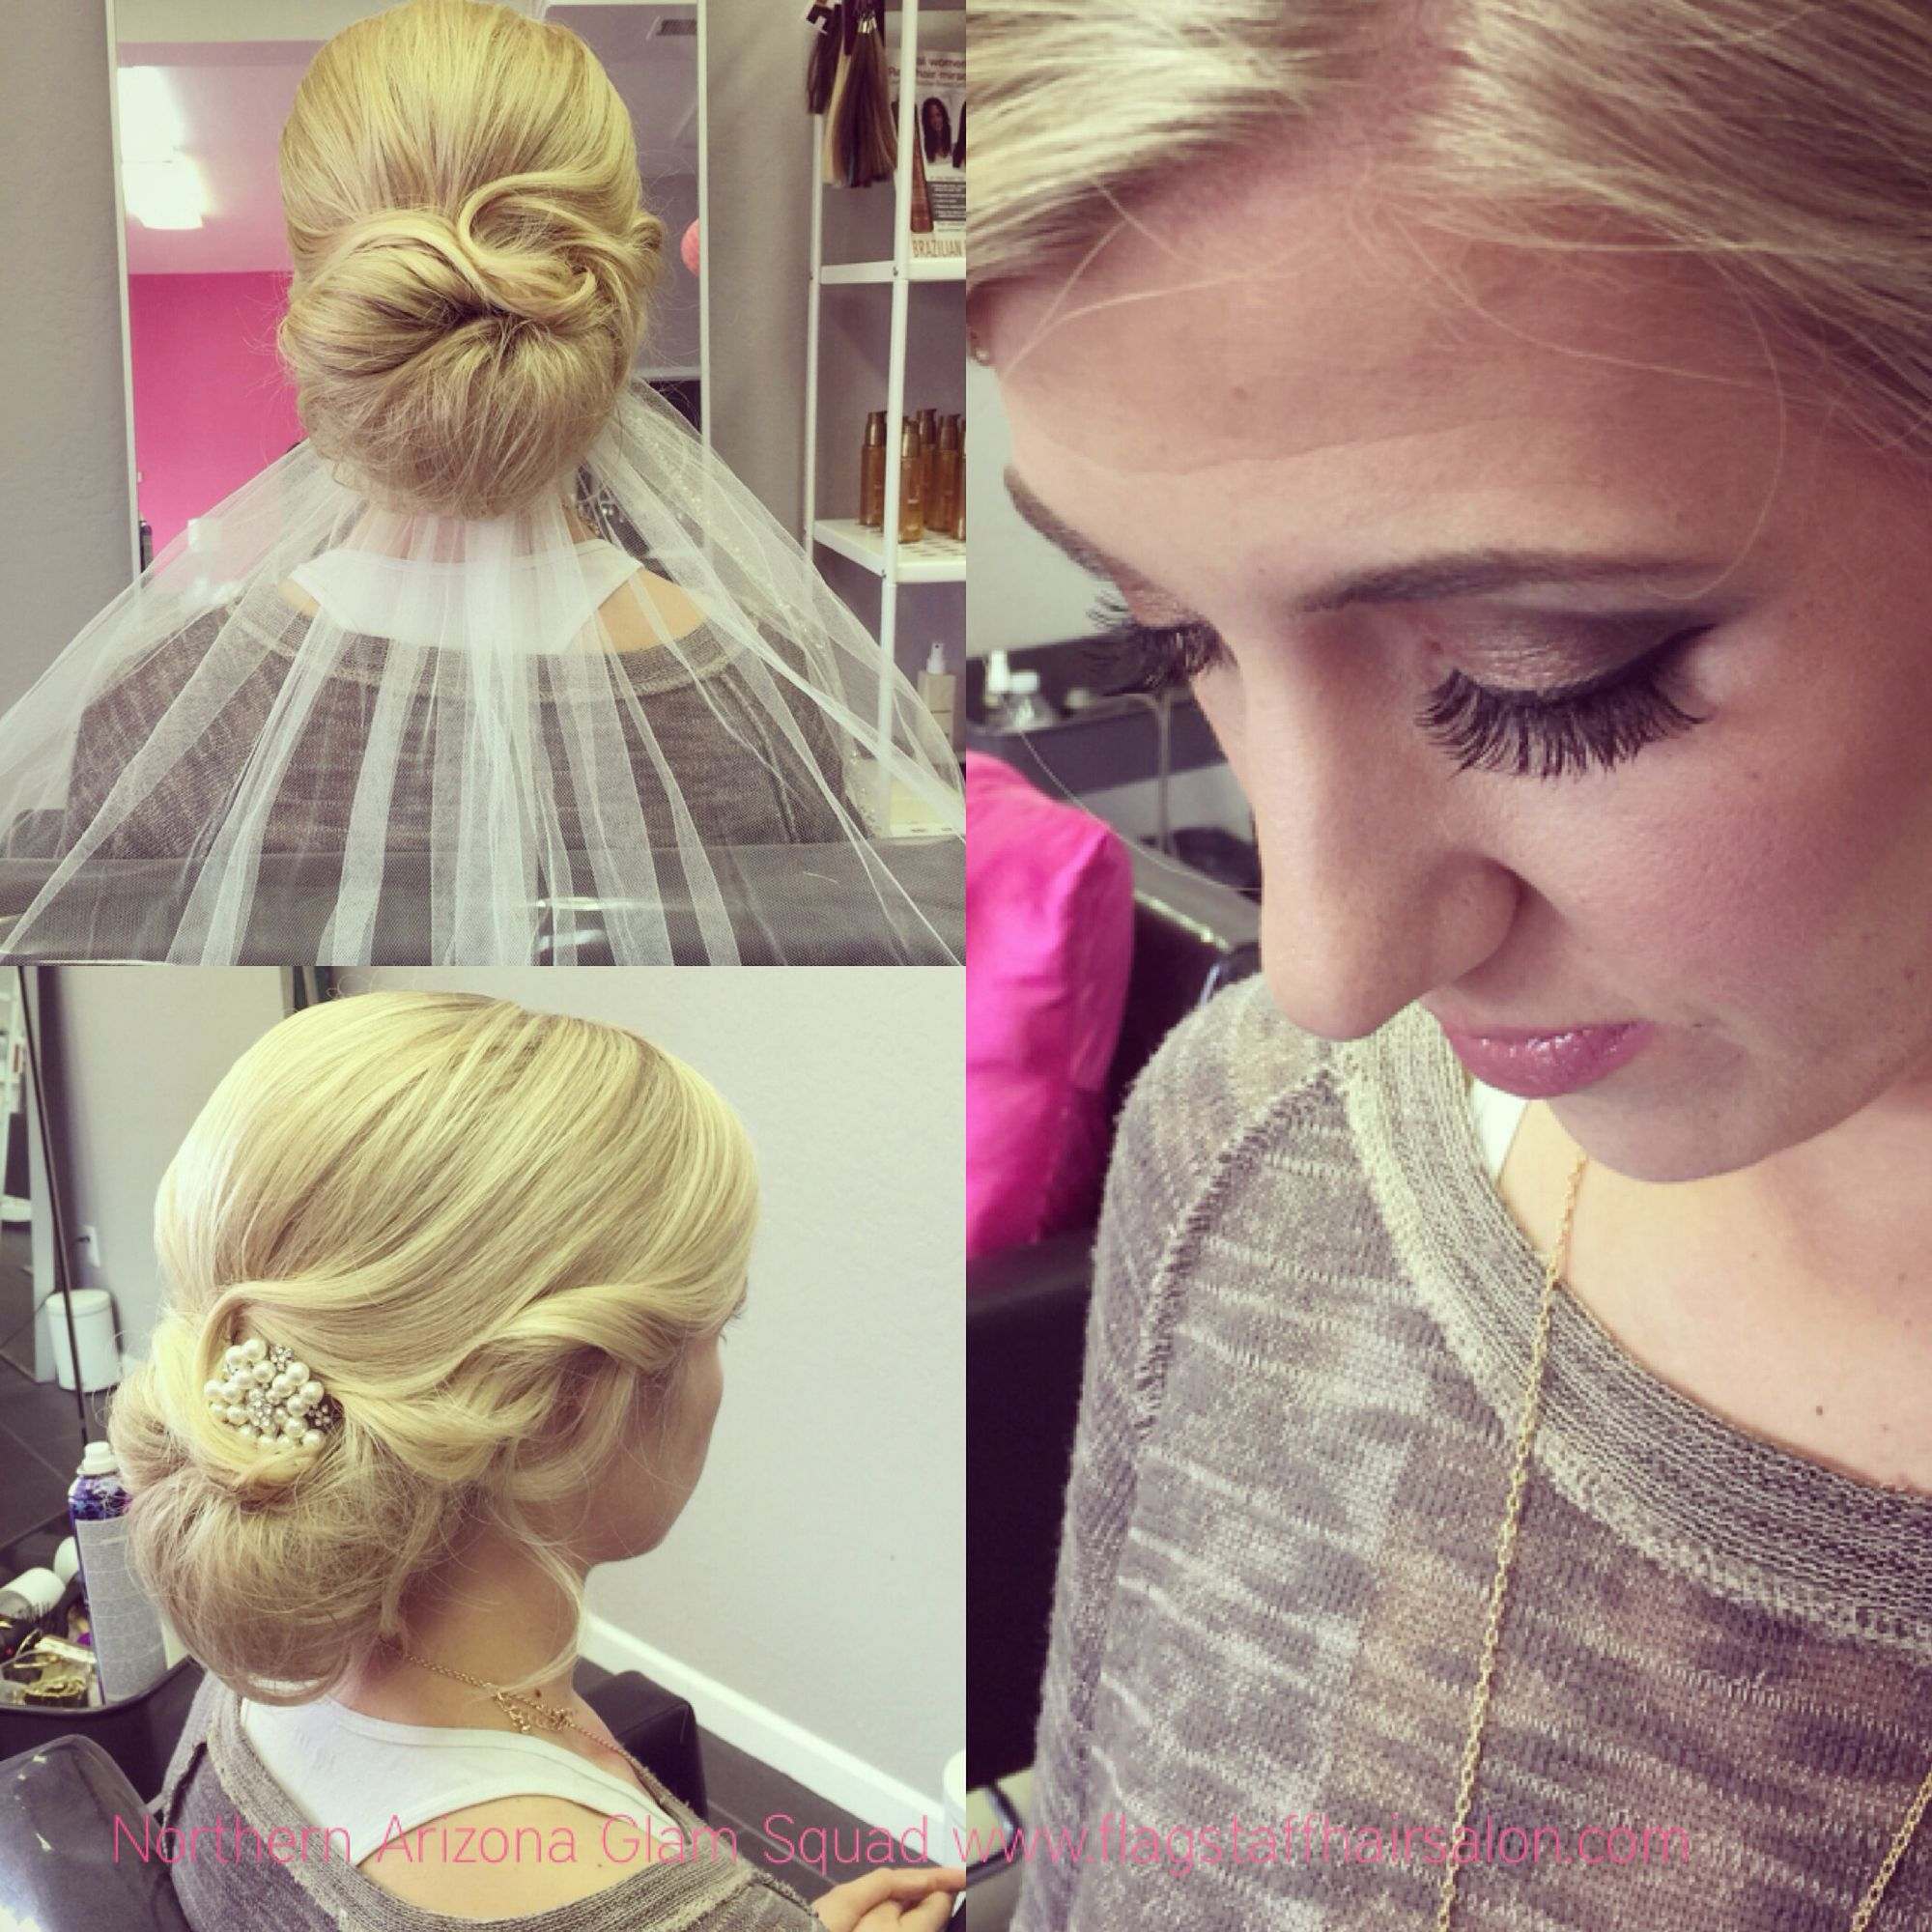 bridal hair and makeup trial | northern arizona glam squad